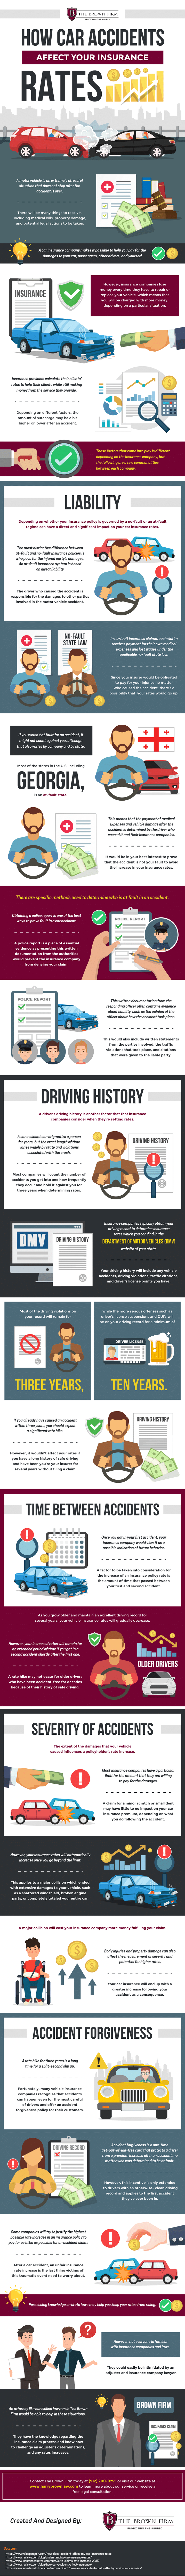 How Car Accidents Affect your Insurance Rates infographic